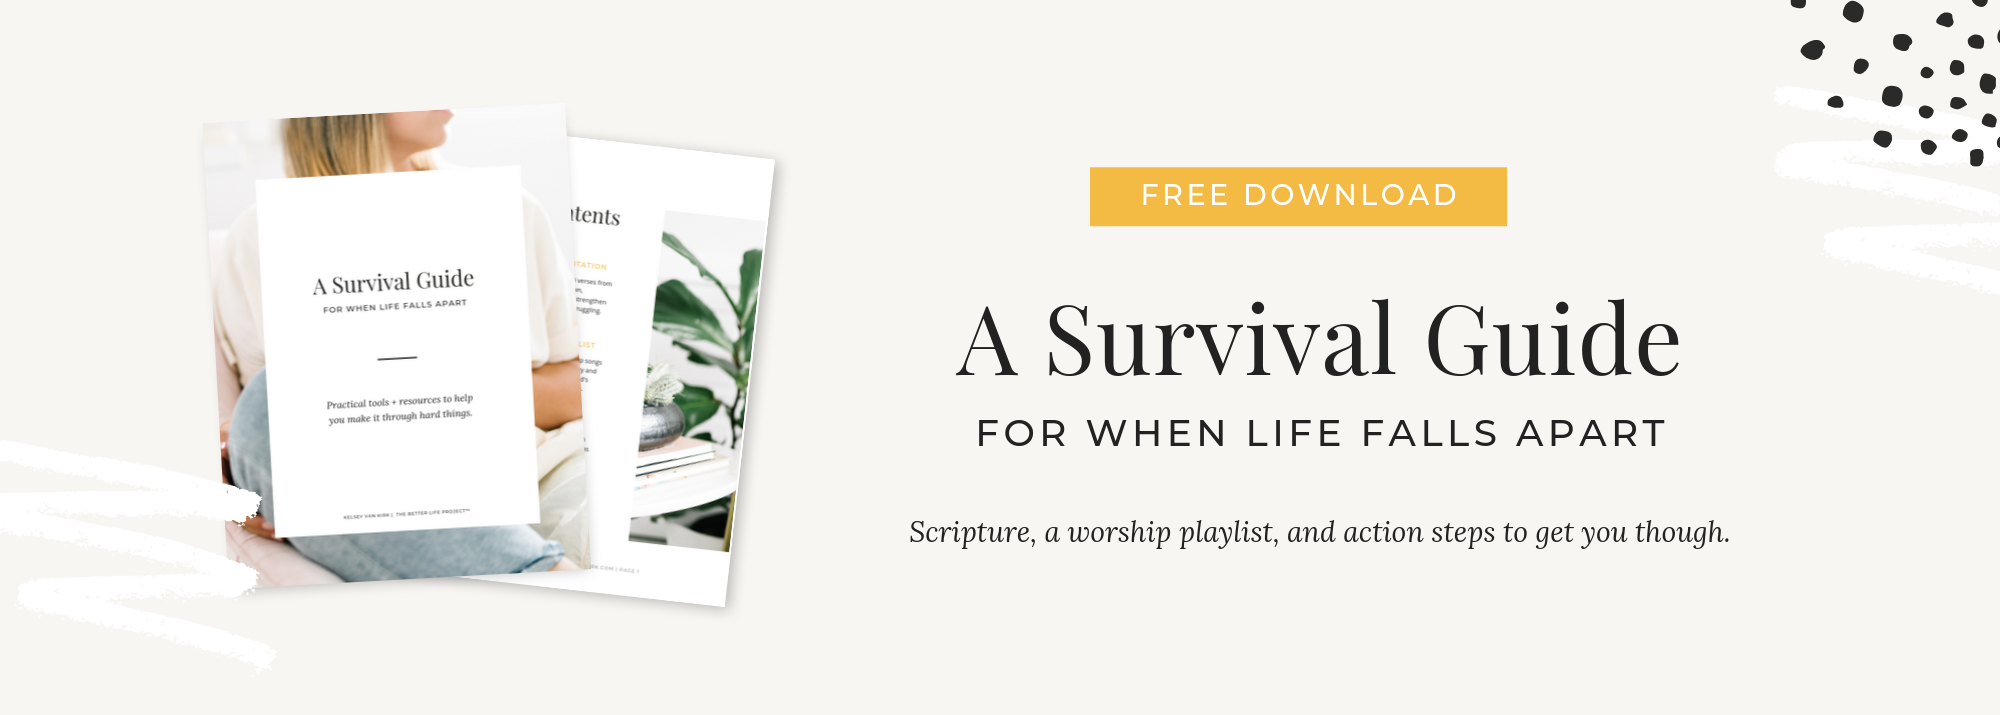 A Survival Guide for When Life Falls Apart | The Better Life Project™